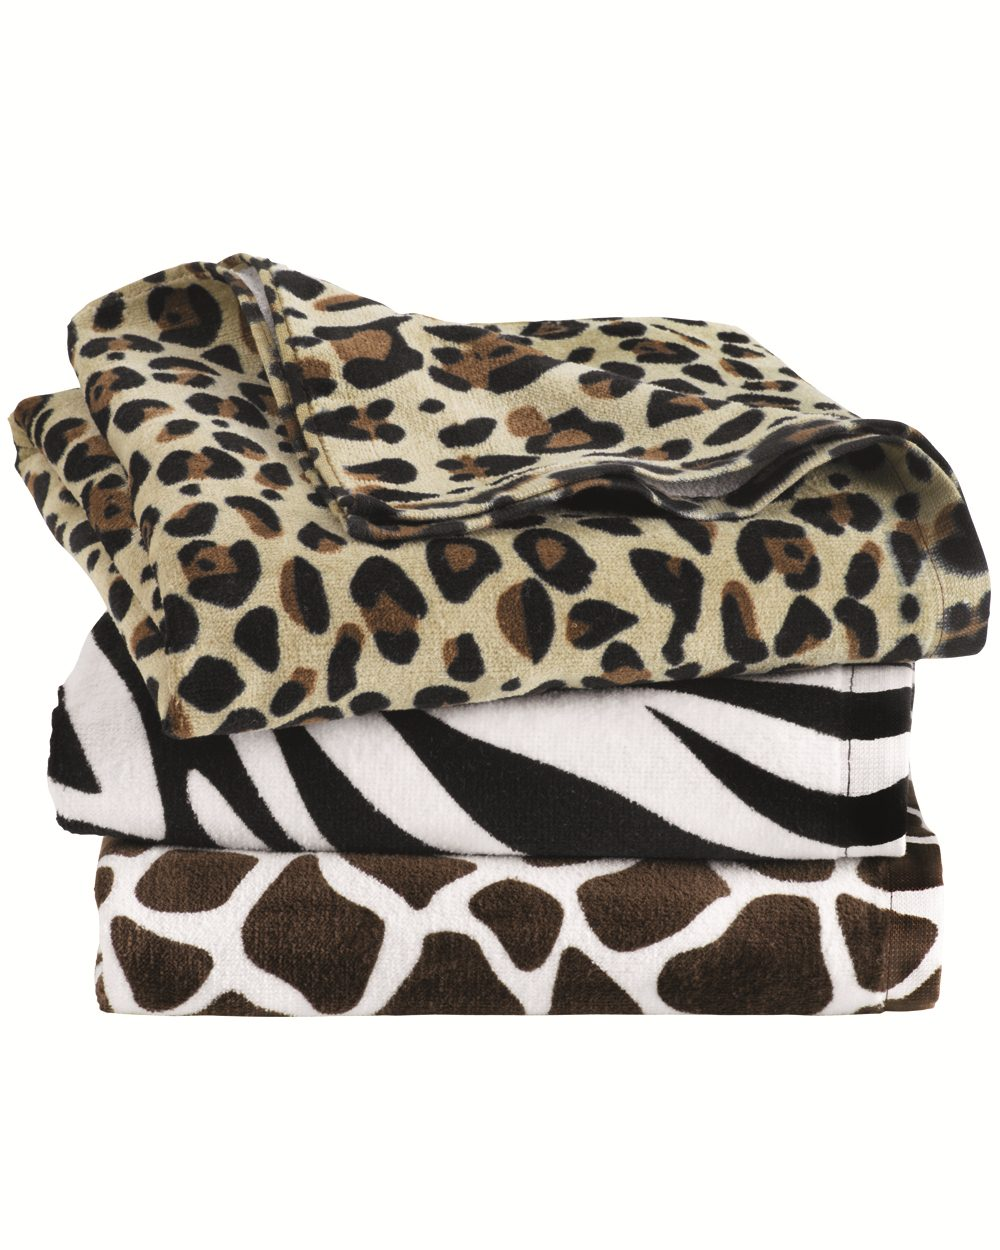 Carmel Towel Company - Animal Print Velour Beach Towel